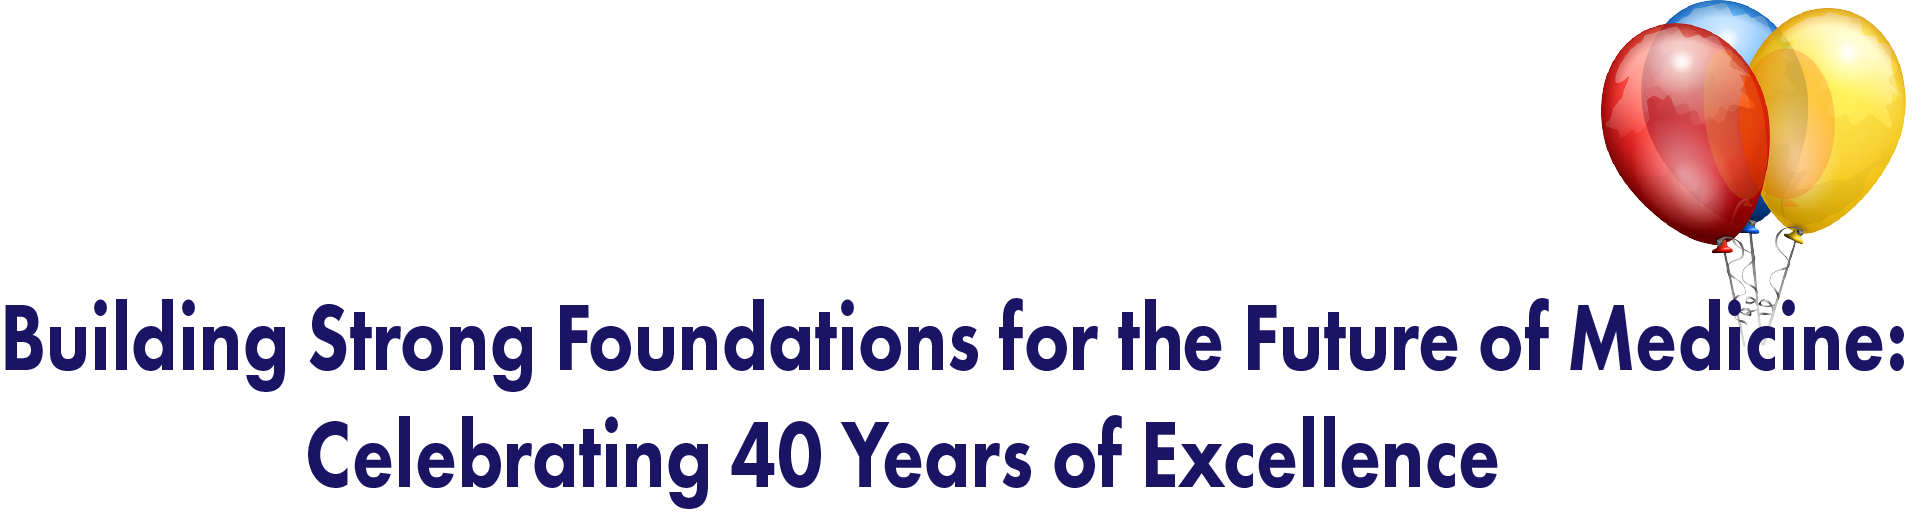 Building Strong Foundations for the Future of Medicine: Celebrating40 Years of Excellence.